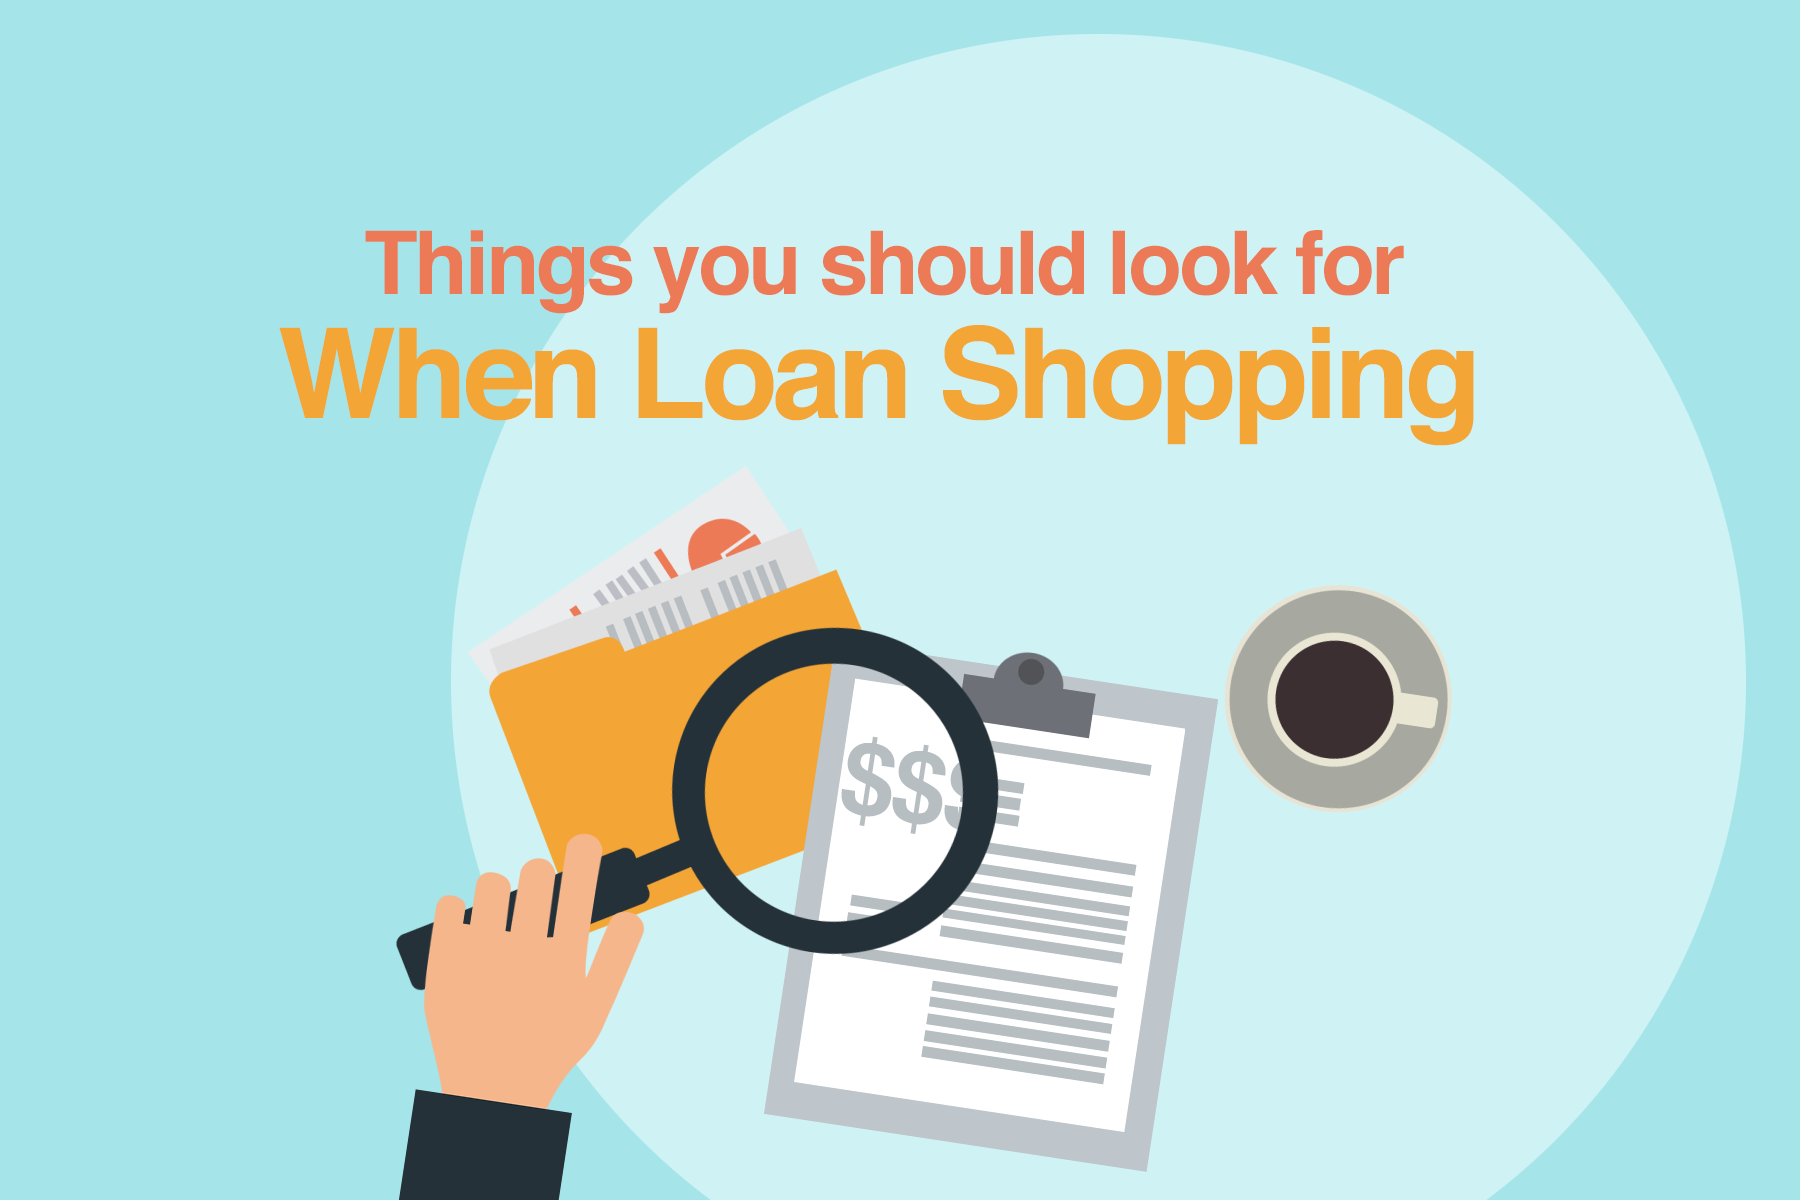 Online Loan Companies: Things You Should Look for When Loan Shopping